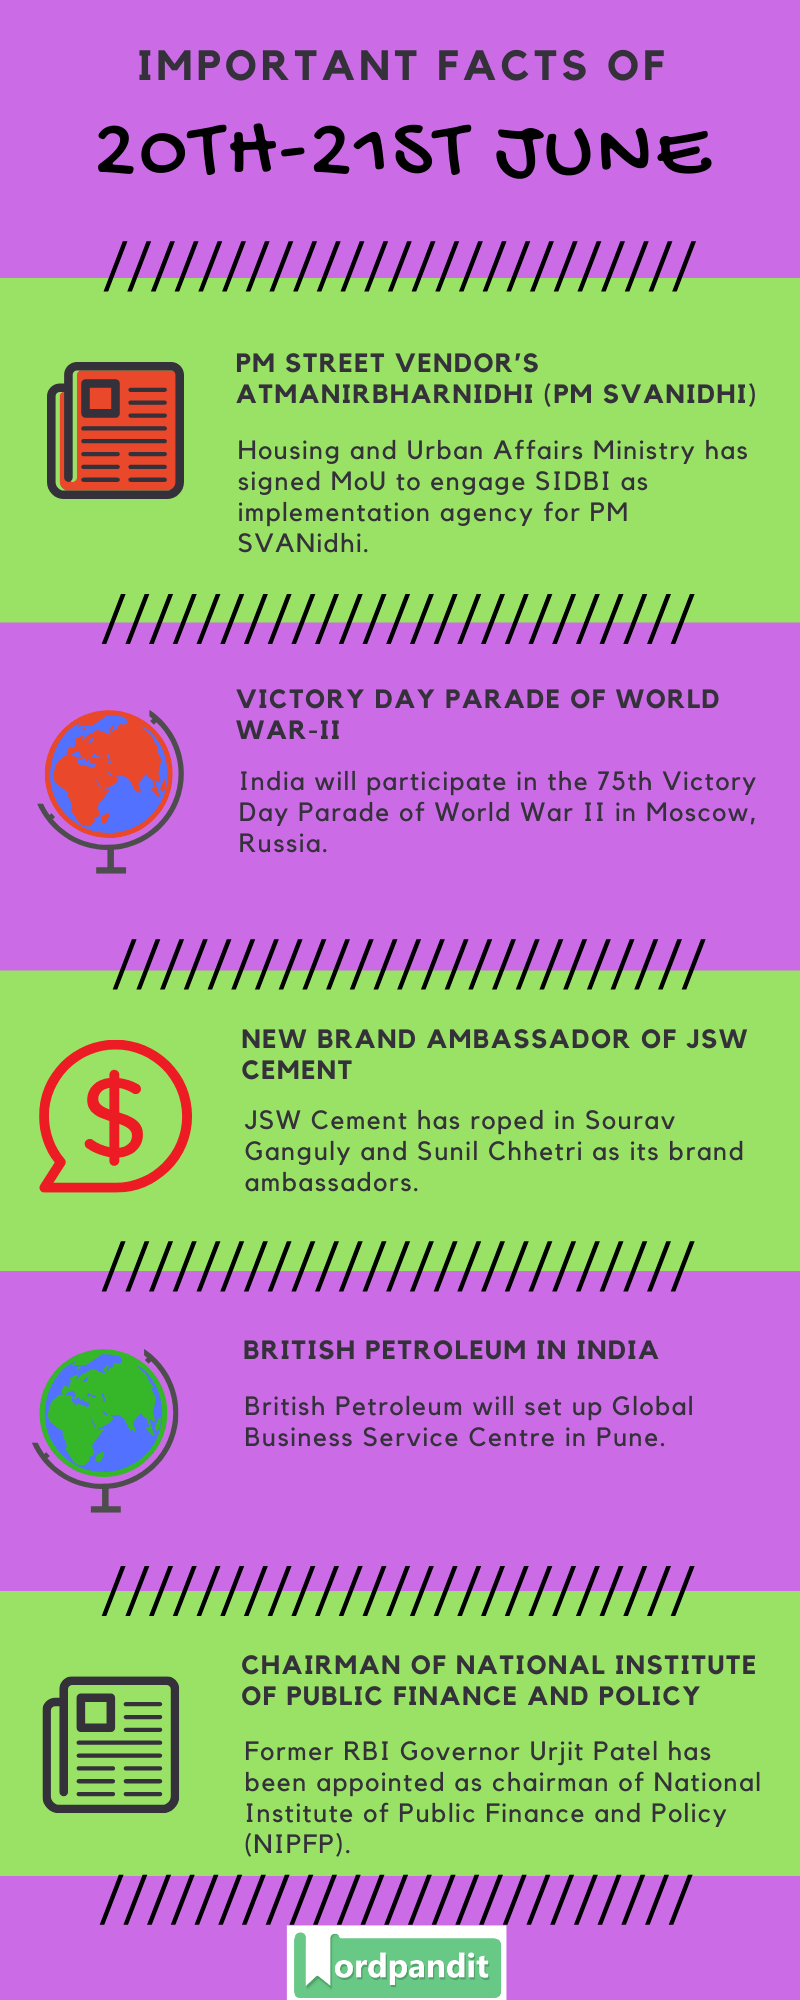 Daily Current Affairs 20th-21st June 2020 Current Affairs Quiz 20th-21st June 2020 Current Affairs Infographic